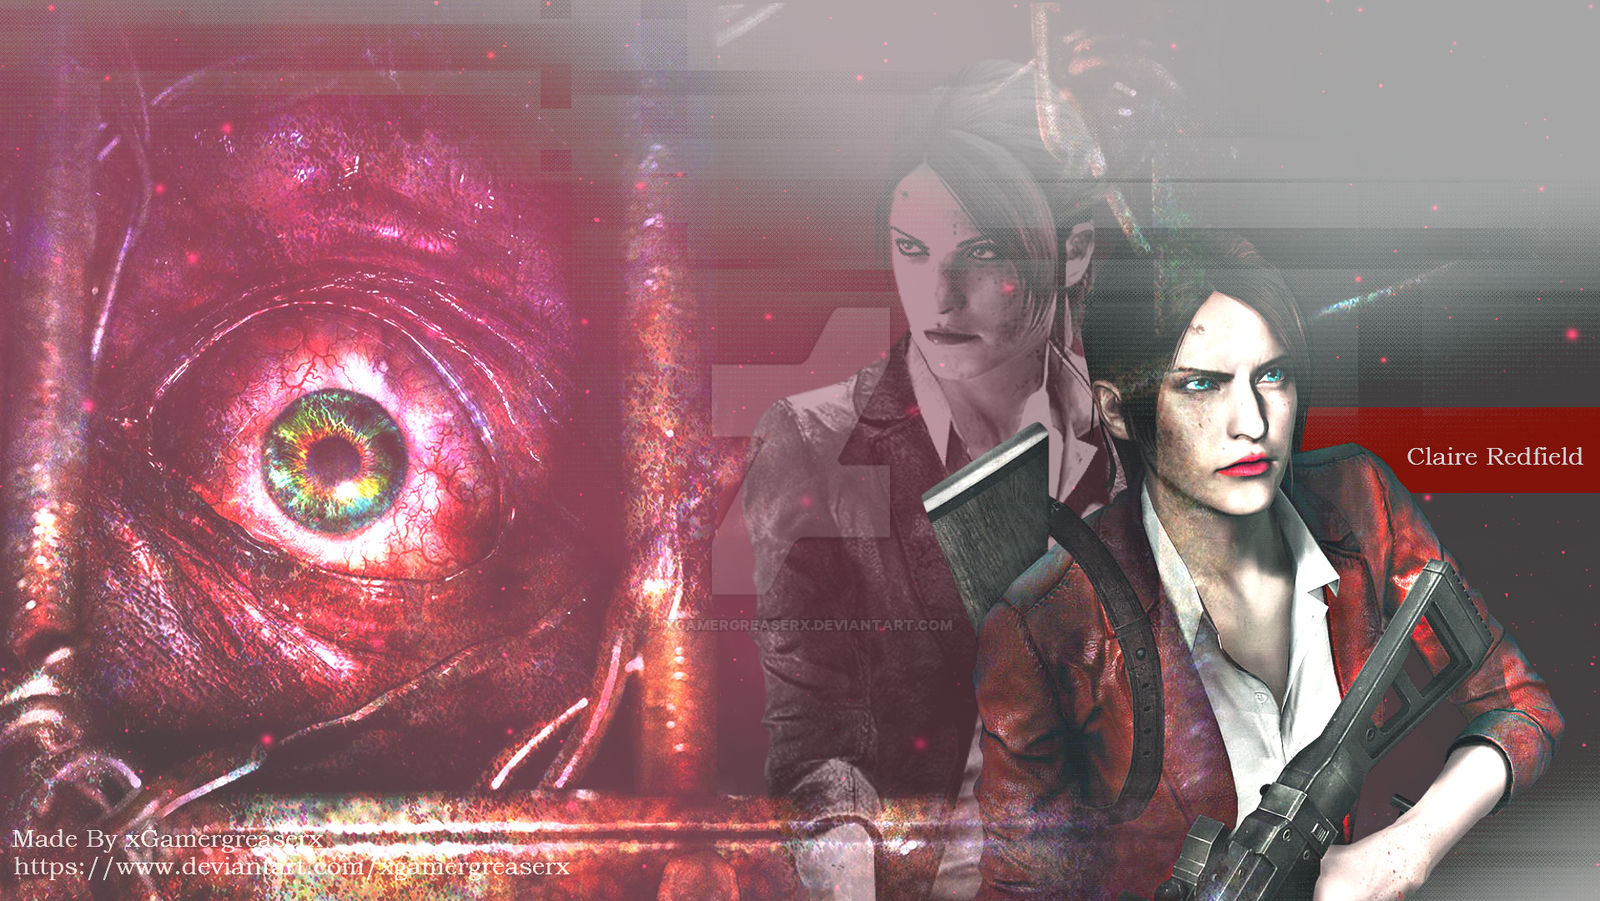 Resident Evil 2 Remake Claire Redfield Wallpaper 2 By